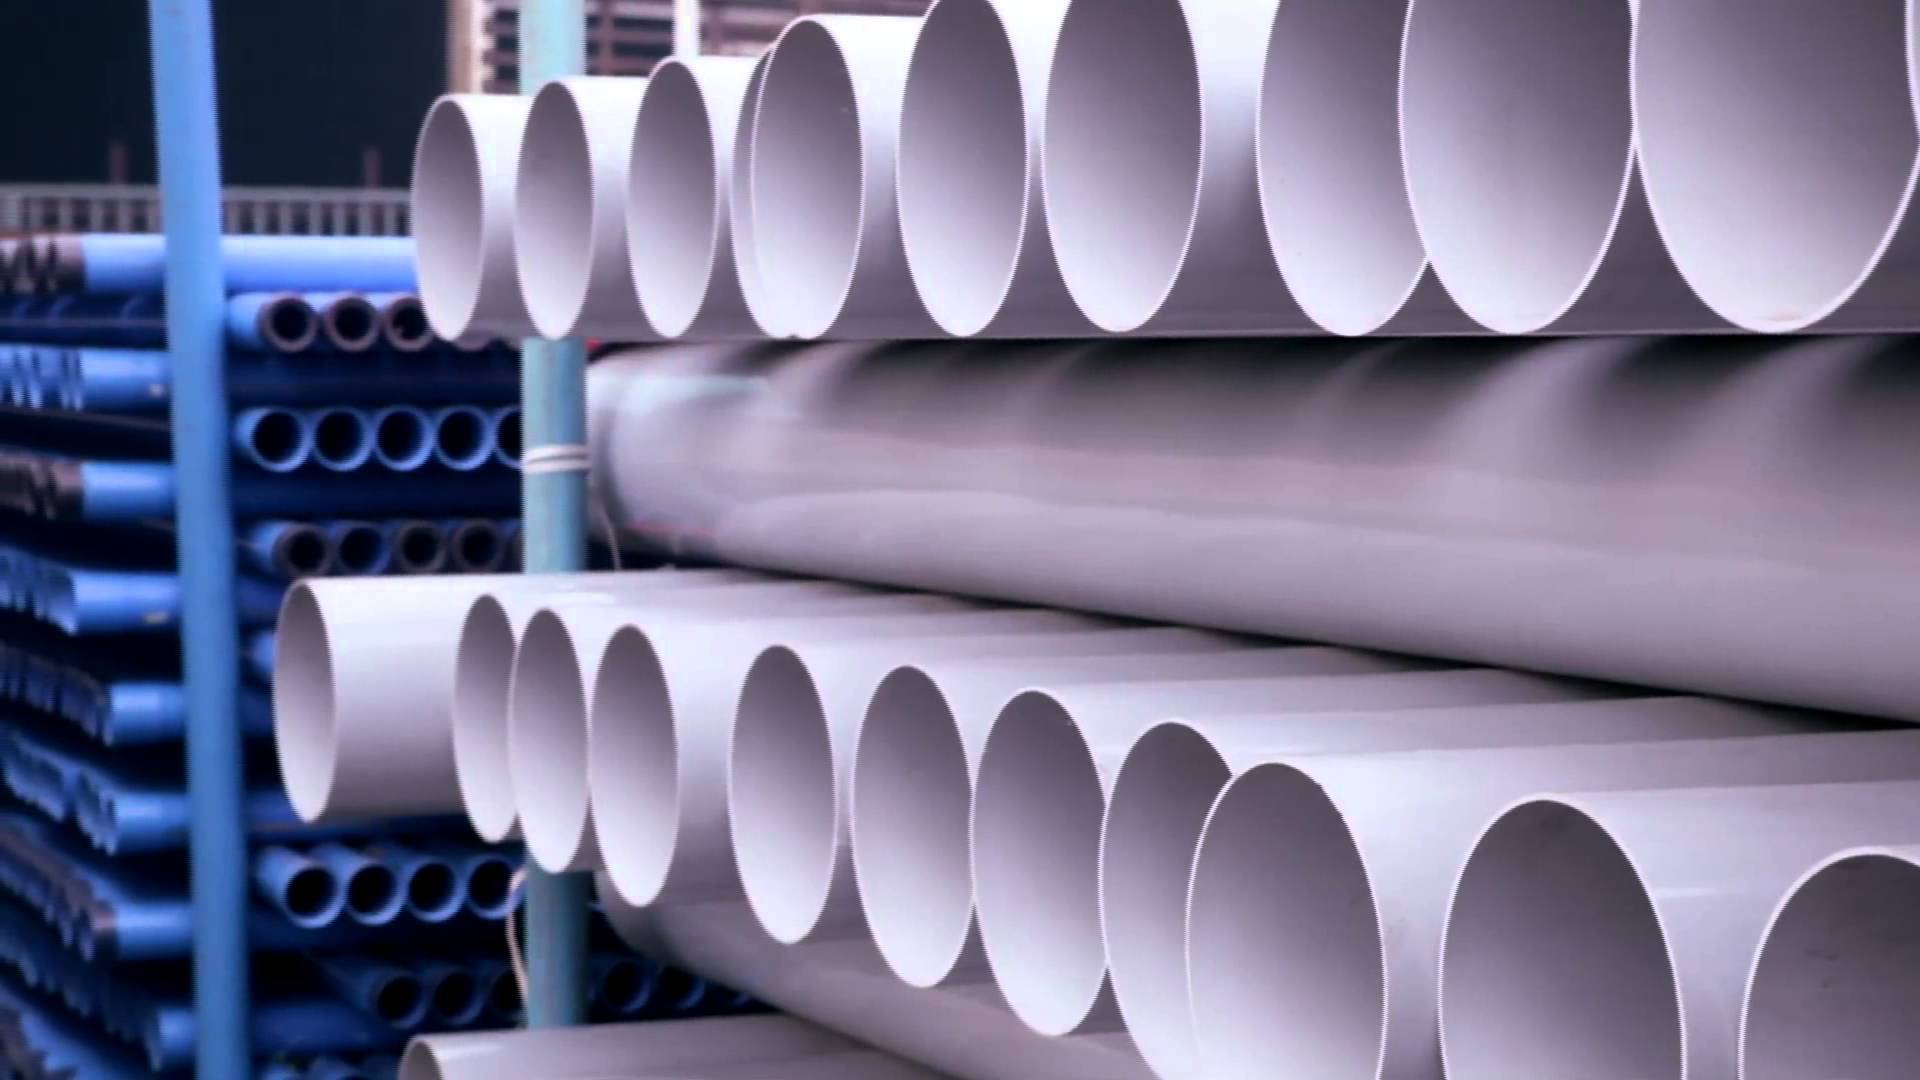 Pvc Water Supply Pipes